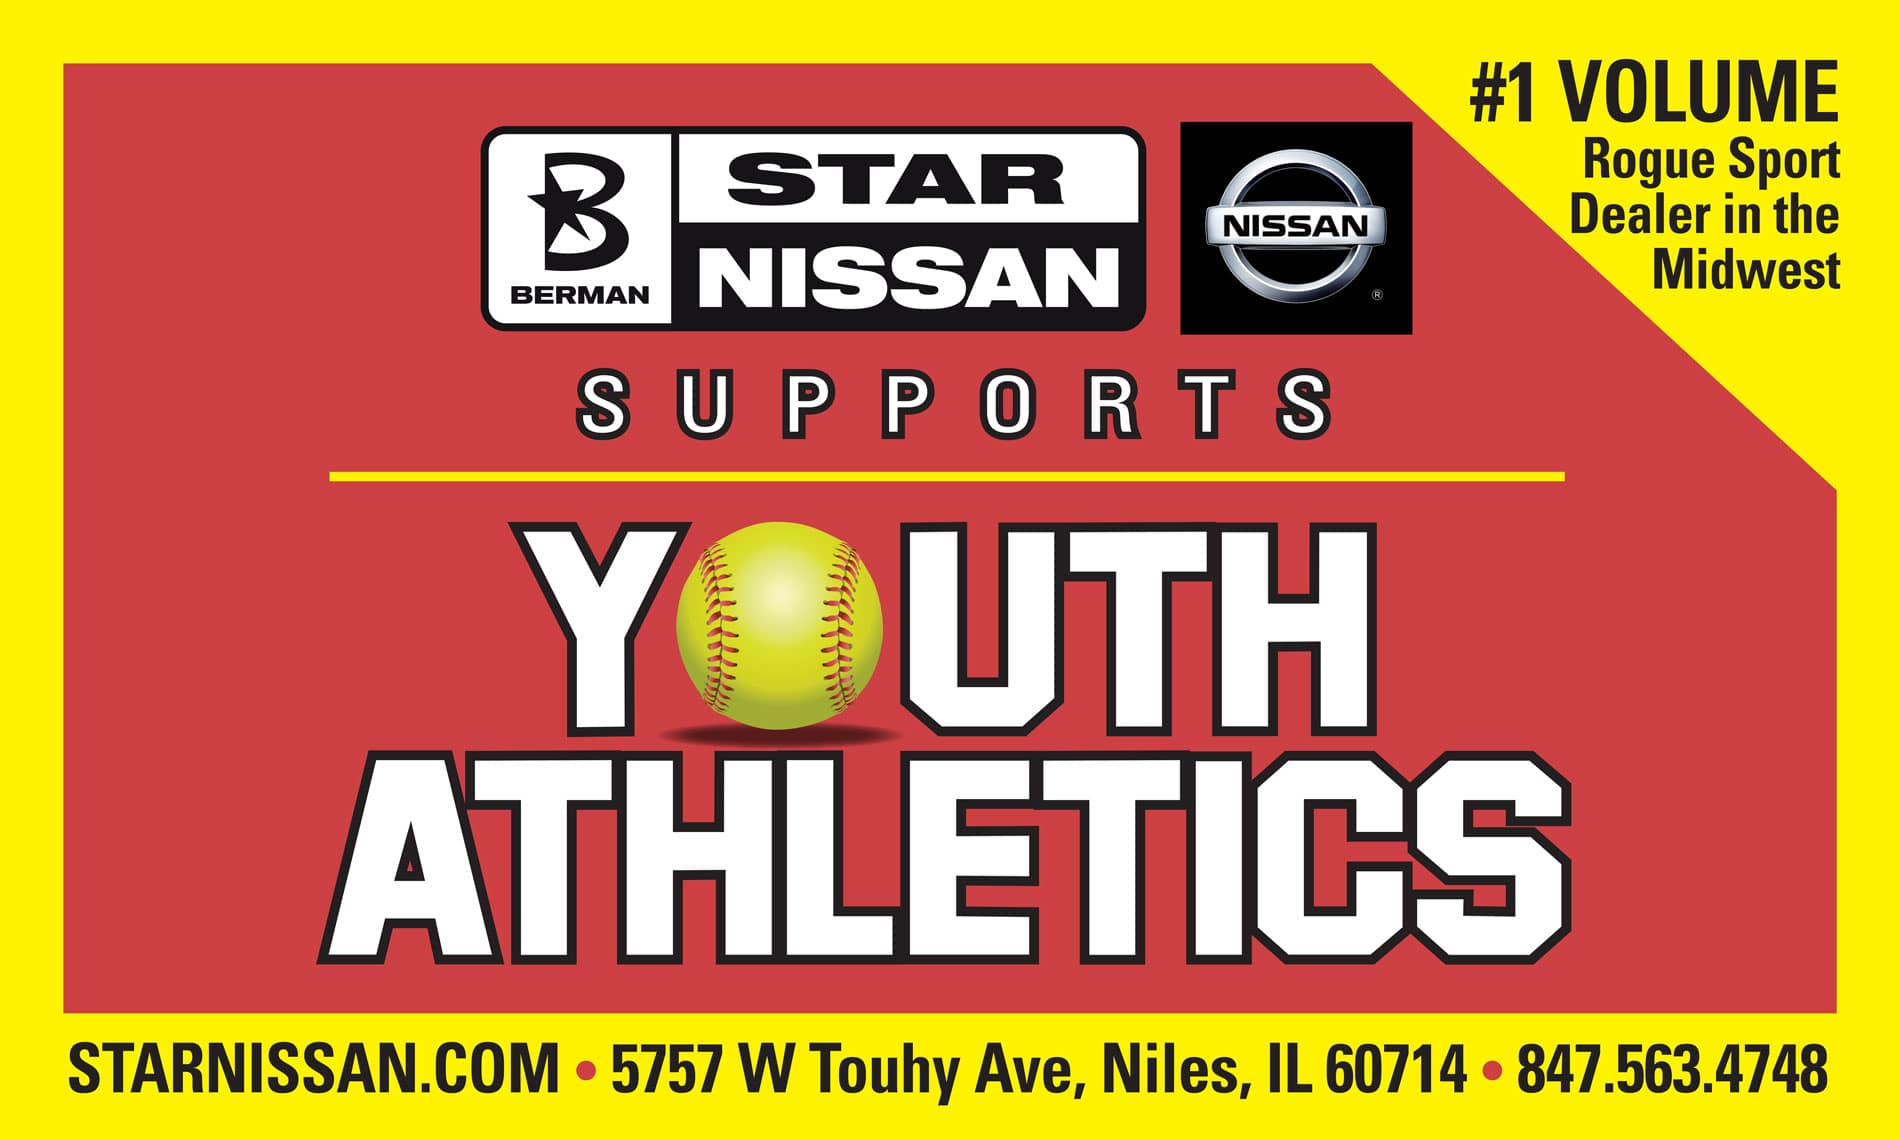 Star Nissan Supports Youth Athleteics in our community